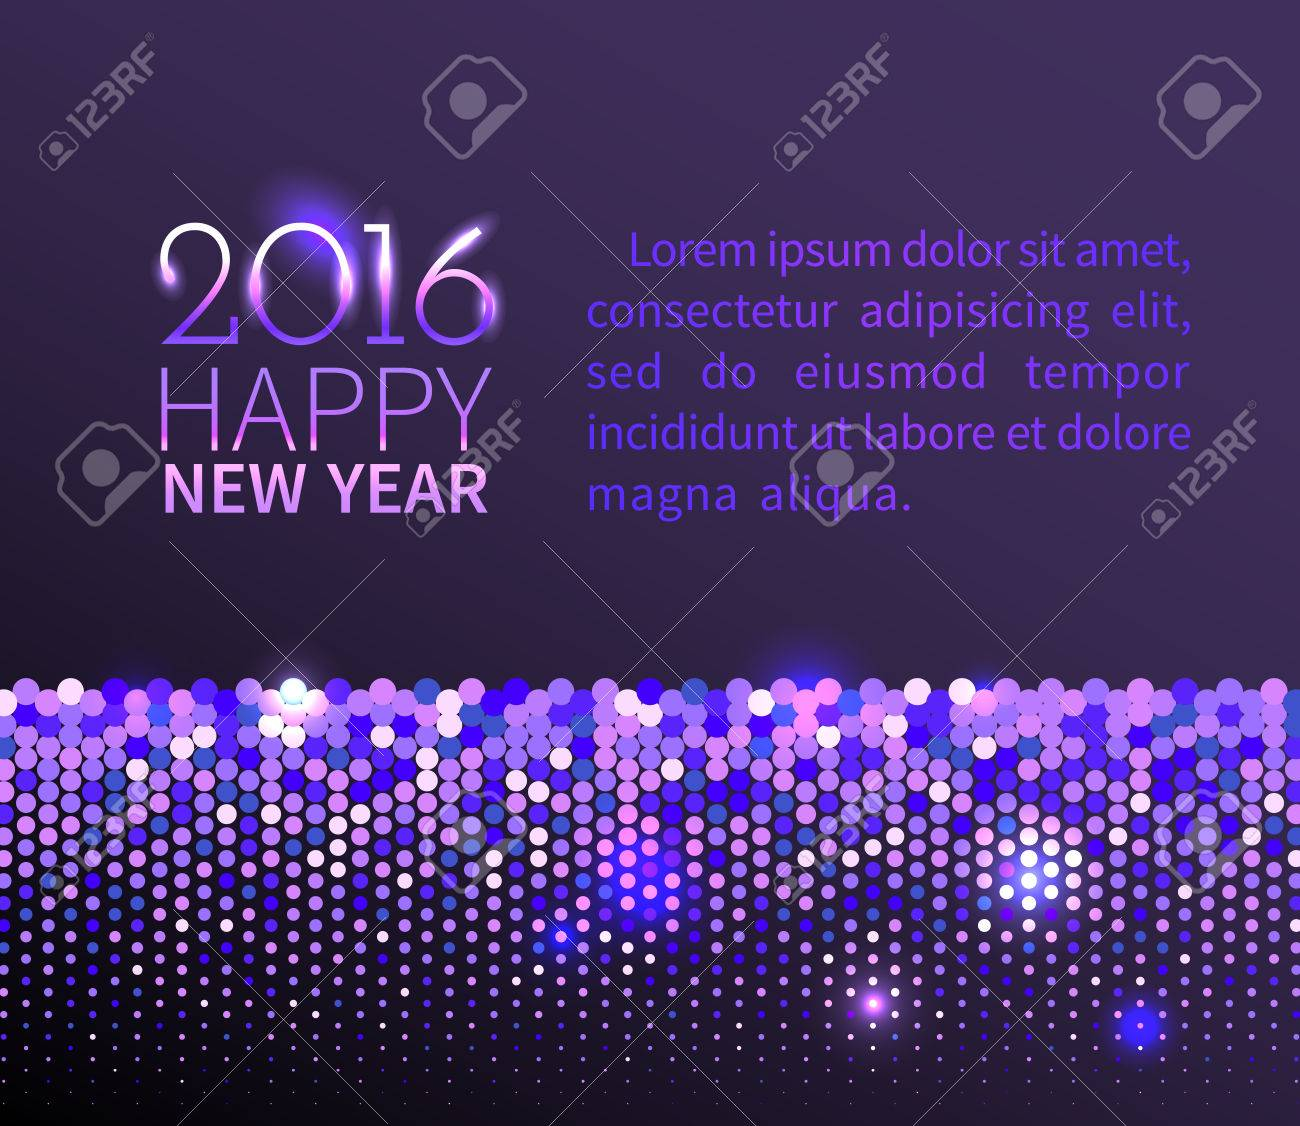 new year 2016 background purple shining horizontal border with sparkling sequins in the disco style